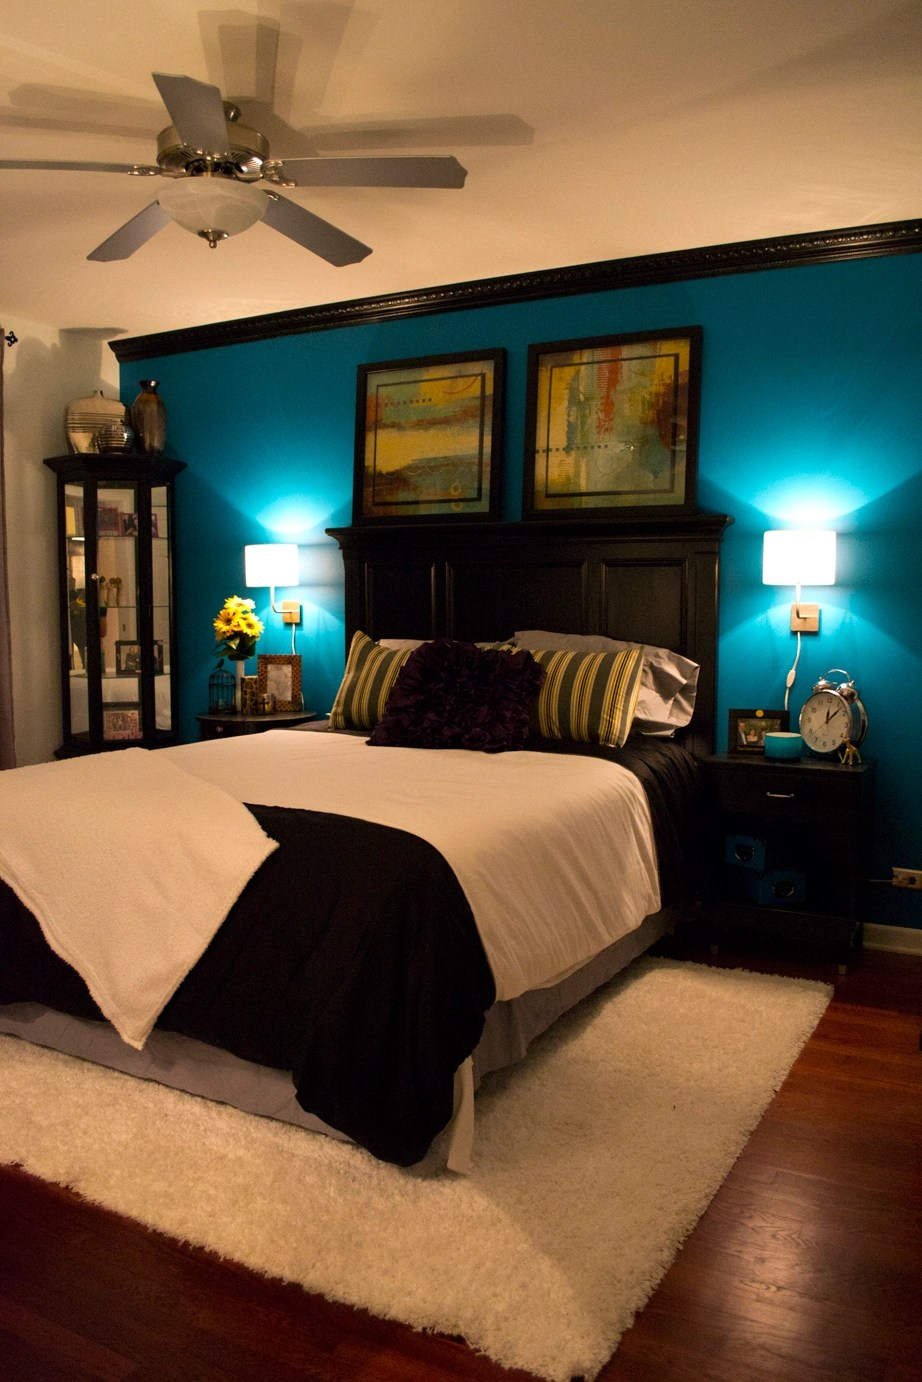 Teal And Brown Master Bedroom Decor